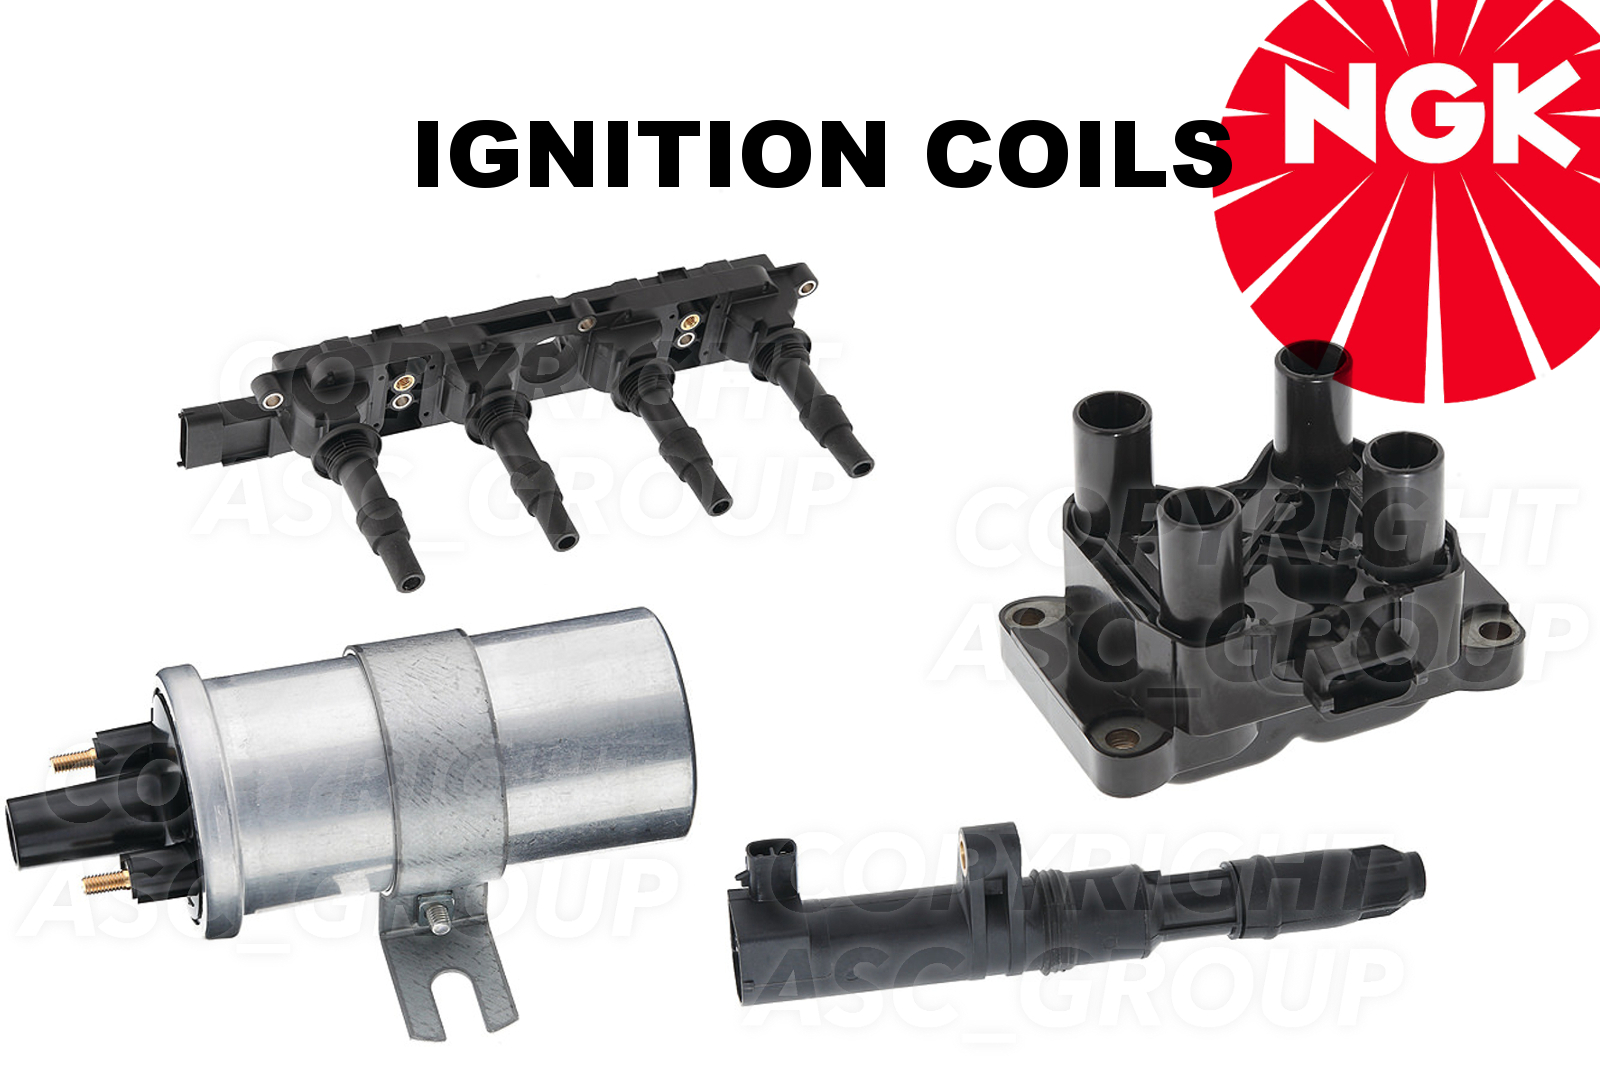 hight resolution of new ngk ignition coil pack nissan maxima qx a33 2 0 2000 02 cyl 4 5 6